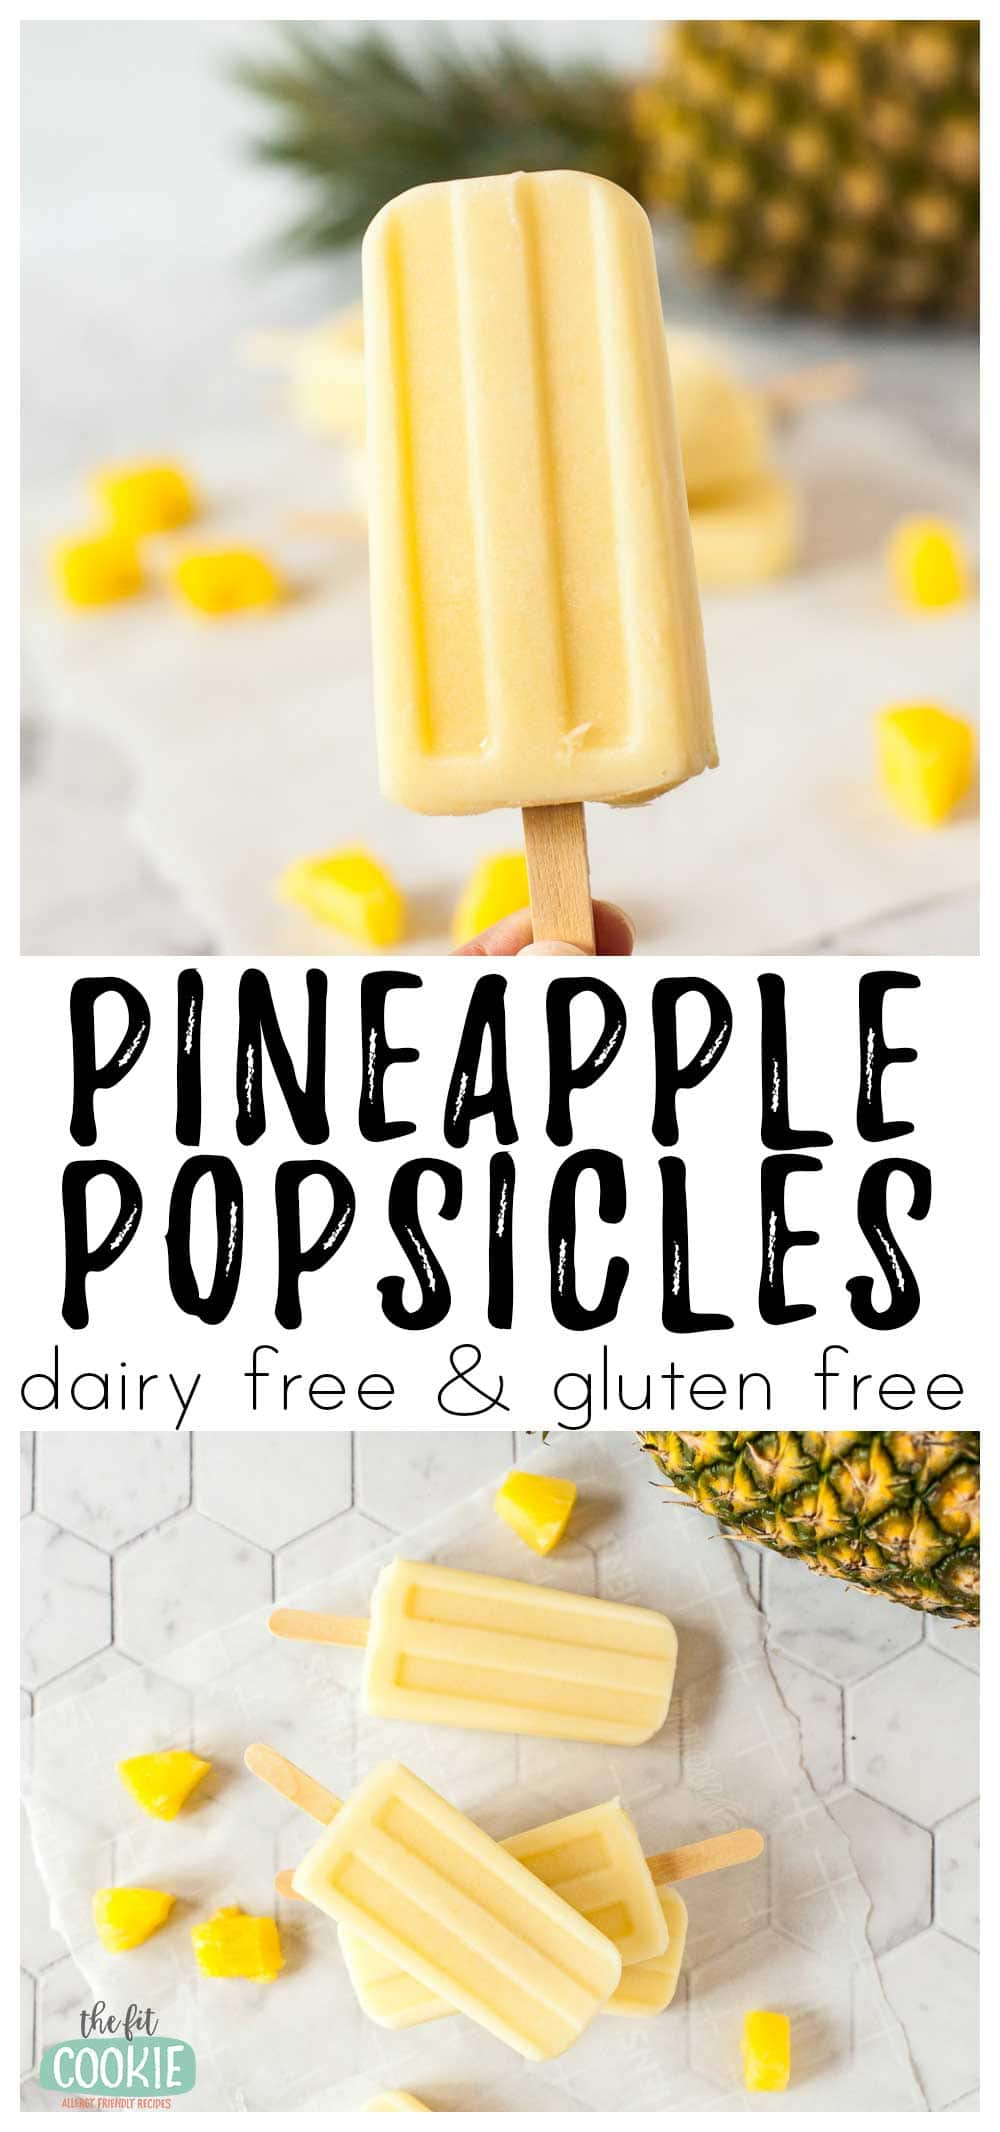 photo collage of dairy free pineapple popsicles